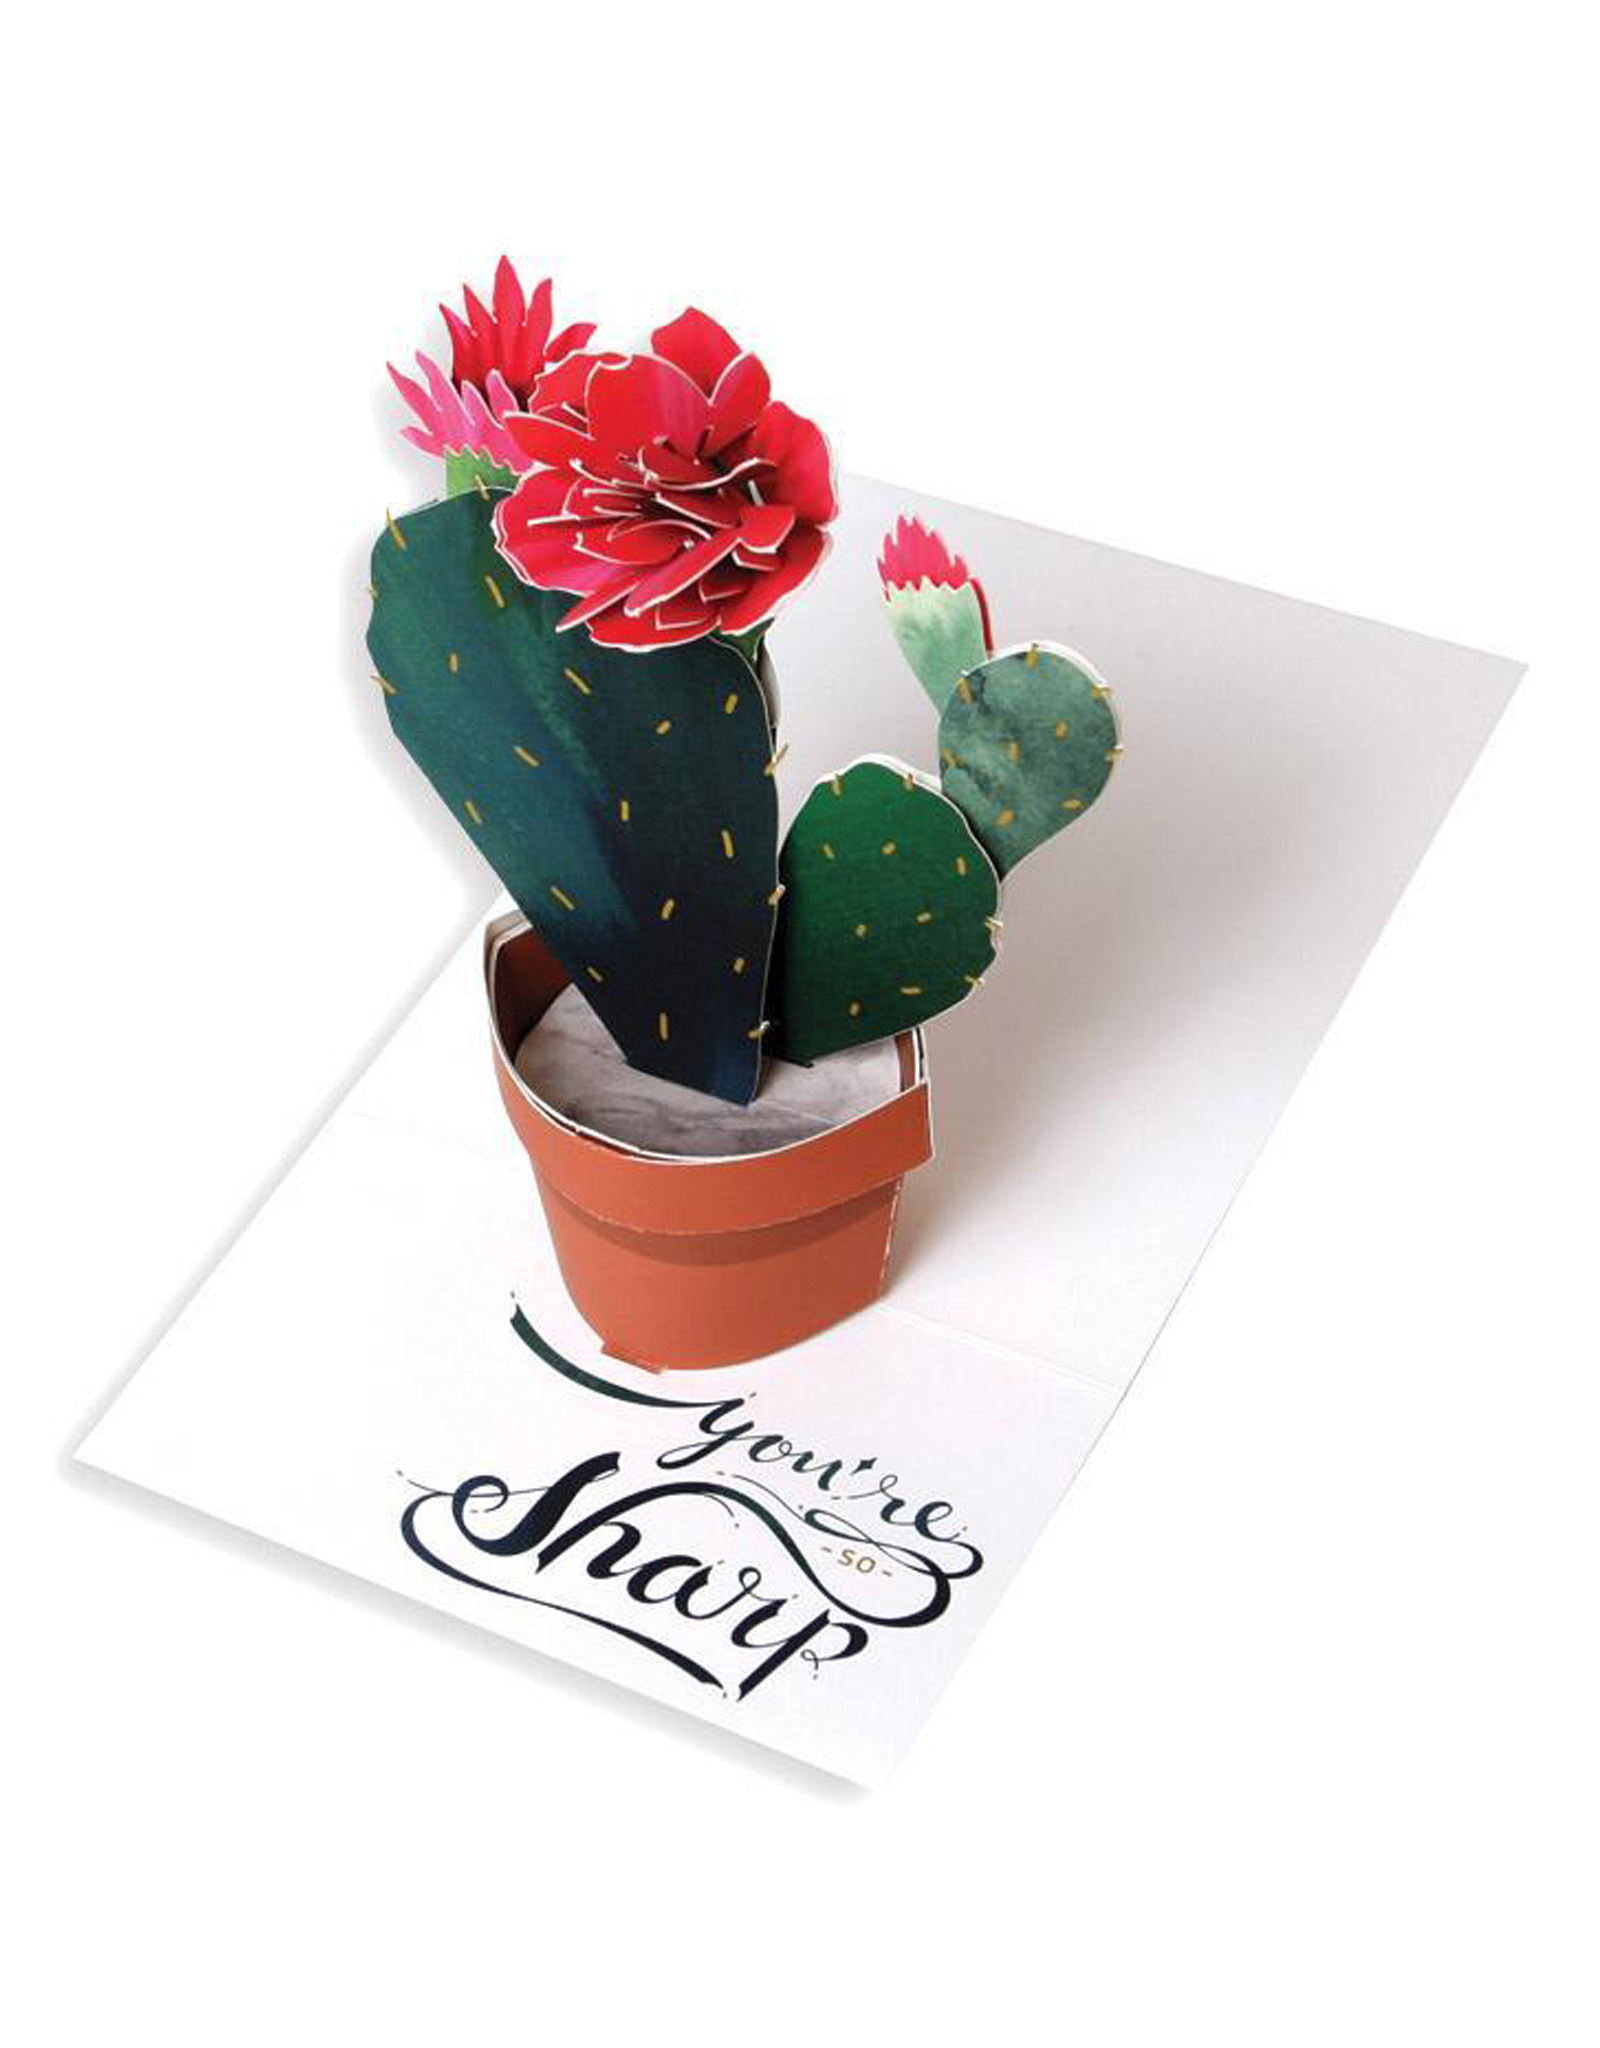 Cactus Pop-up Card